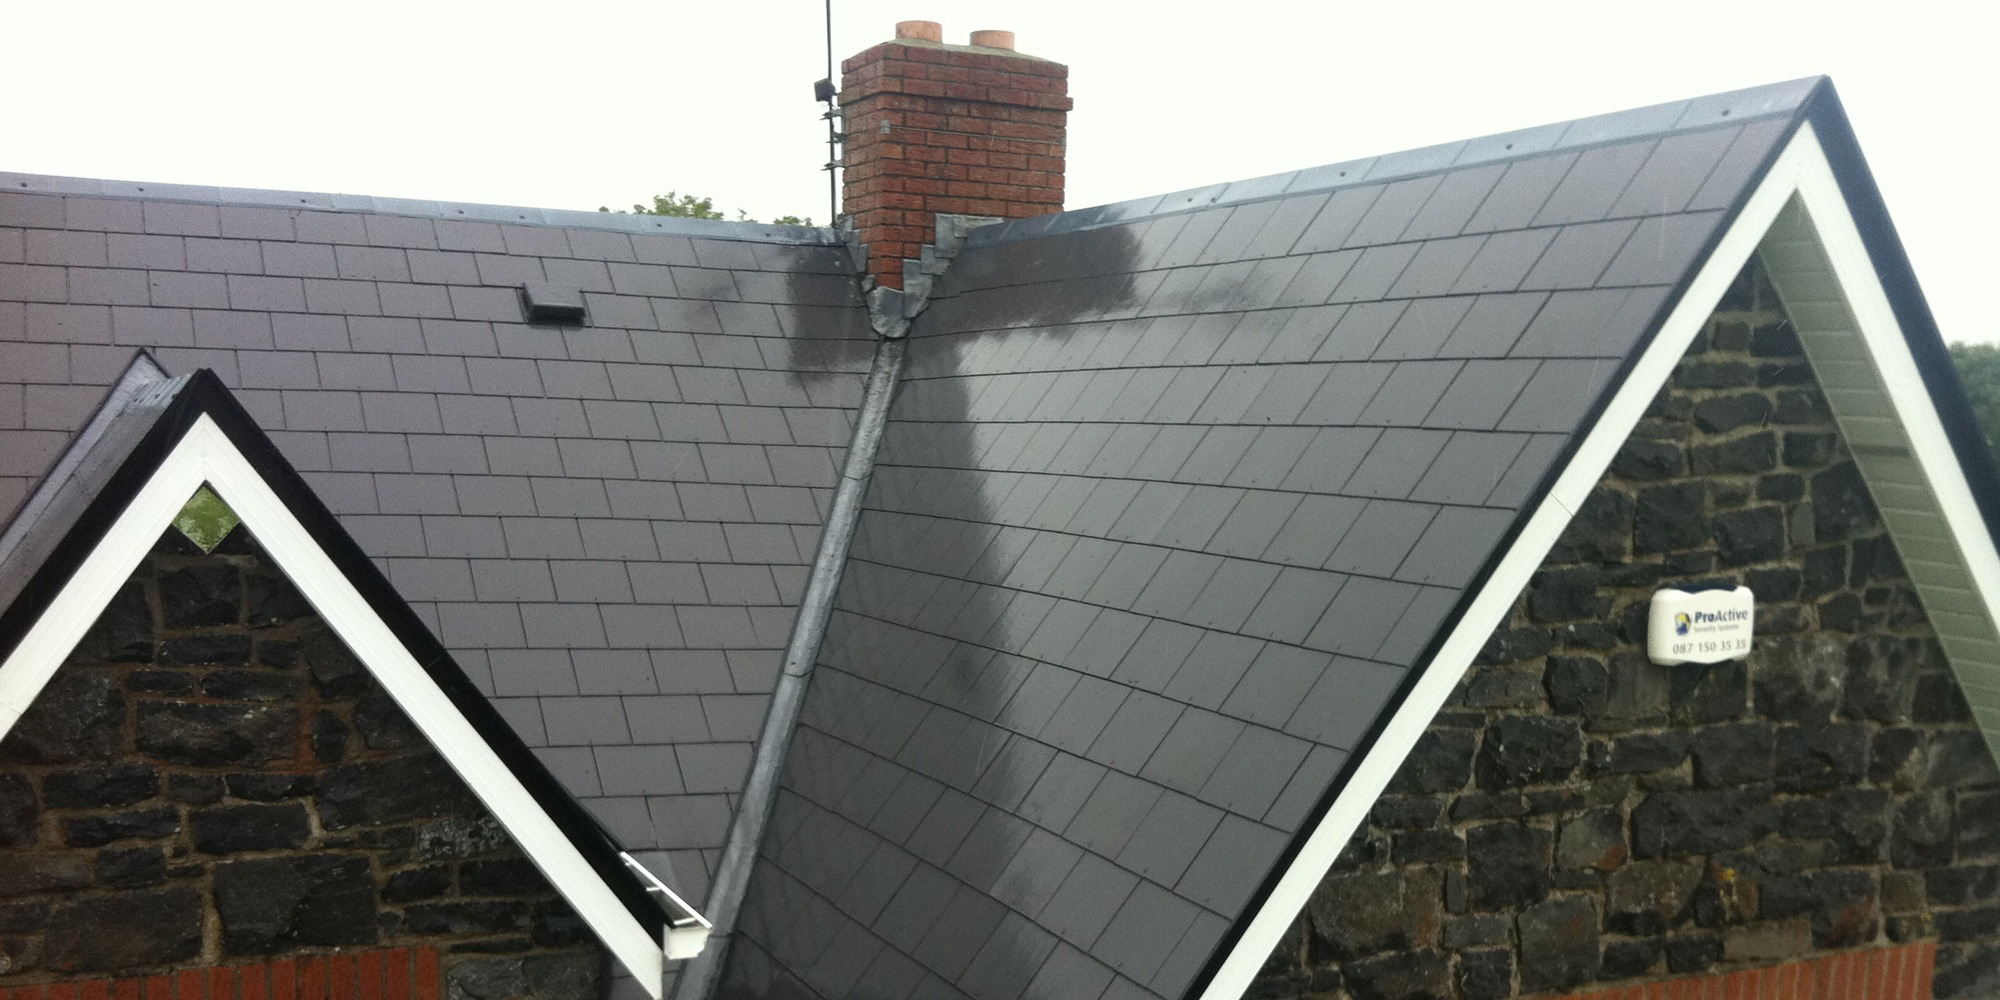 Professional-roof-cleaning-services-in-Mayo,-Sligo,-Roscommon,-Galway-Ireland